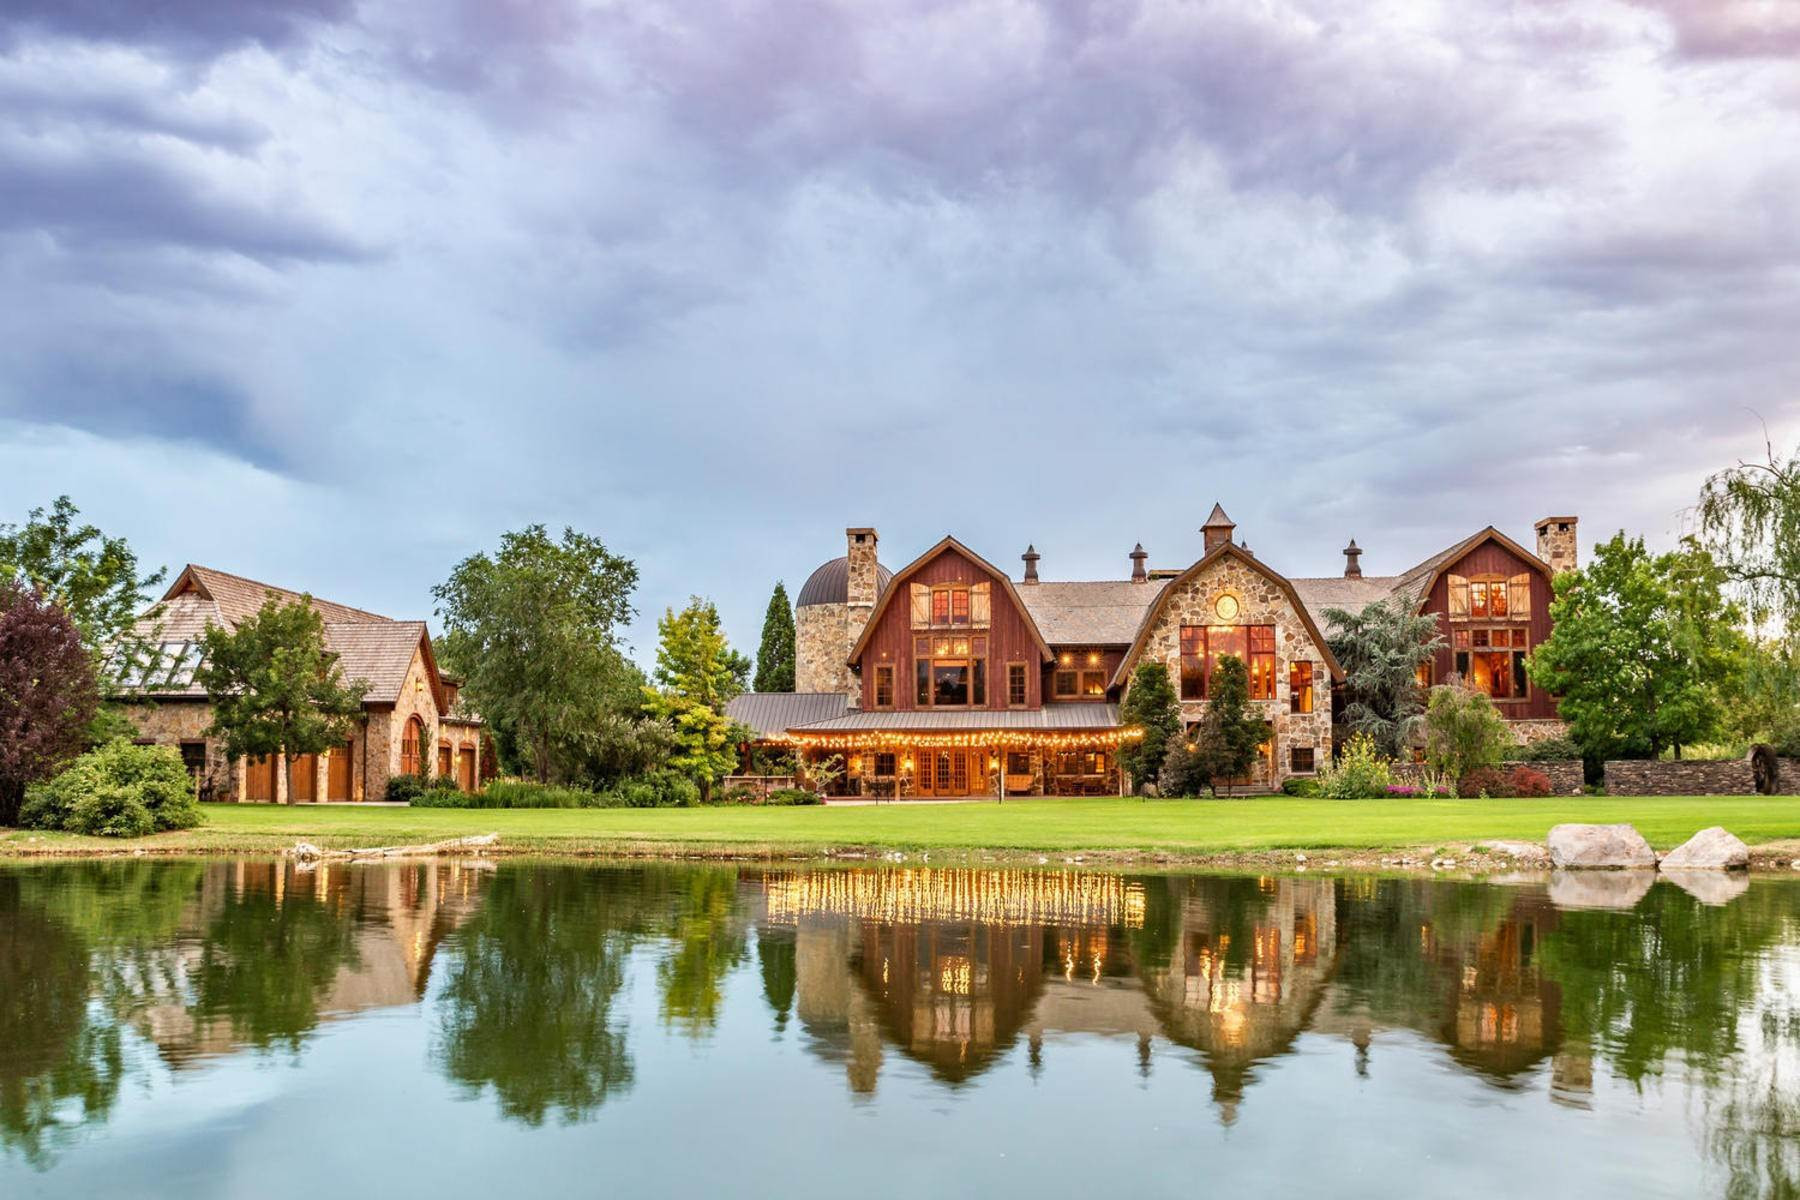 Single Family Homes for Sale at Stunning Private Residence and Recreational Facility on Nearly Twenty Acres 1709 S Geneva Rd Orem, Utah 84058 United States